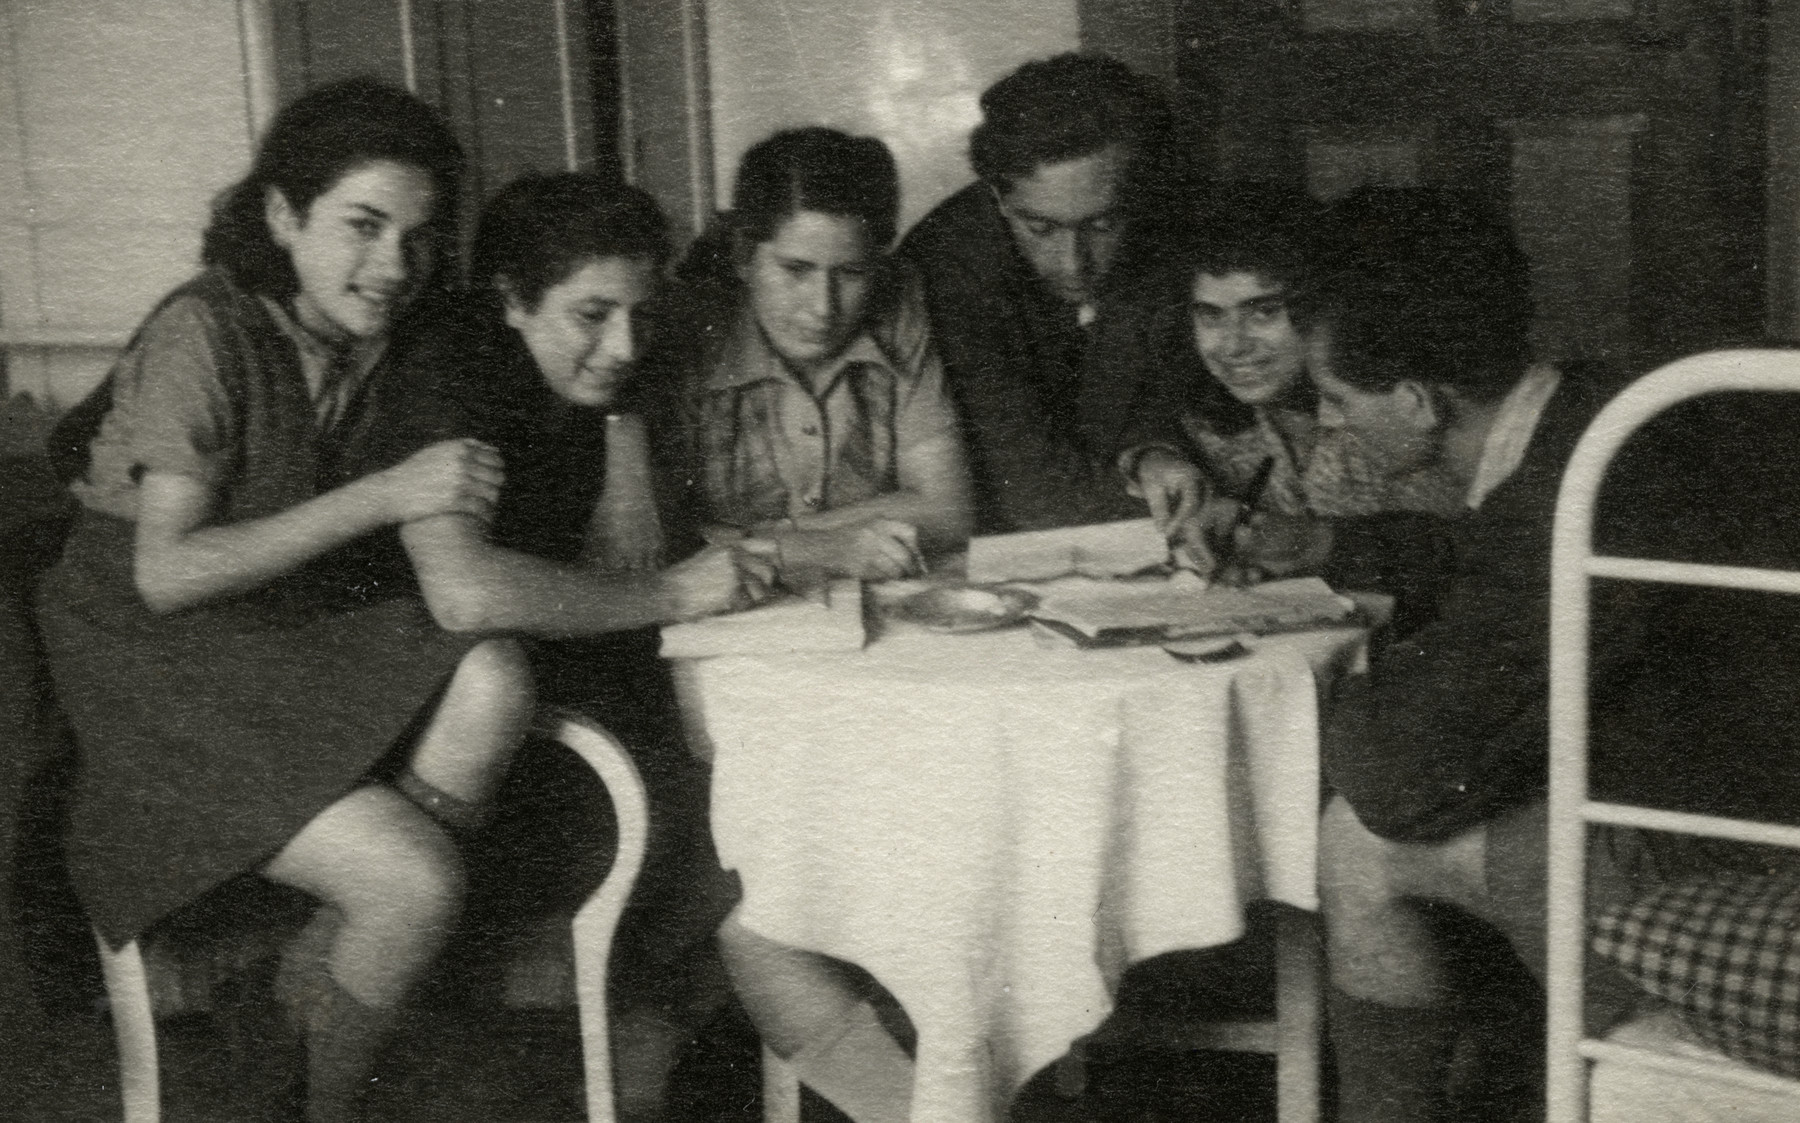 Members of the Kloster Indersdorf cultural committee meet around a table.   From left to right are Henia Bugajewicz, Masha, Hela Gelberg, (unidentified), Genya Riba and unidentified.